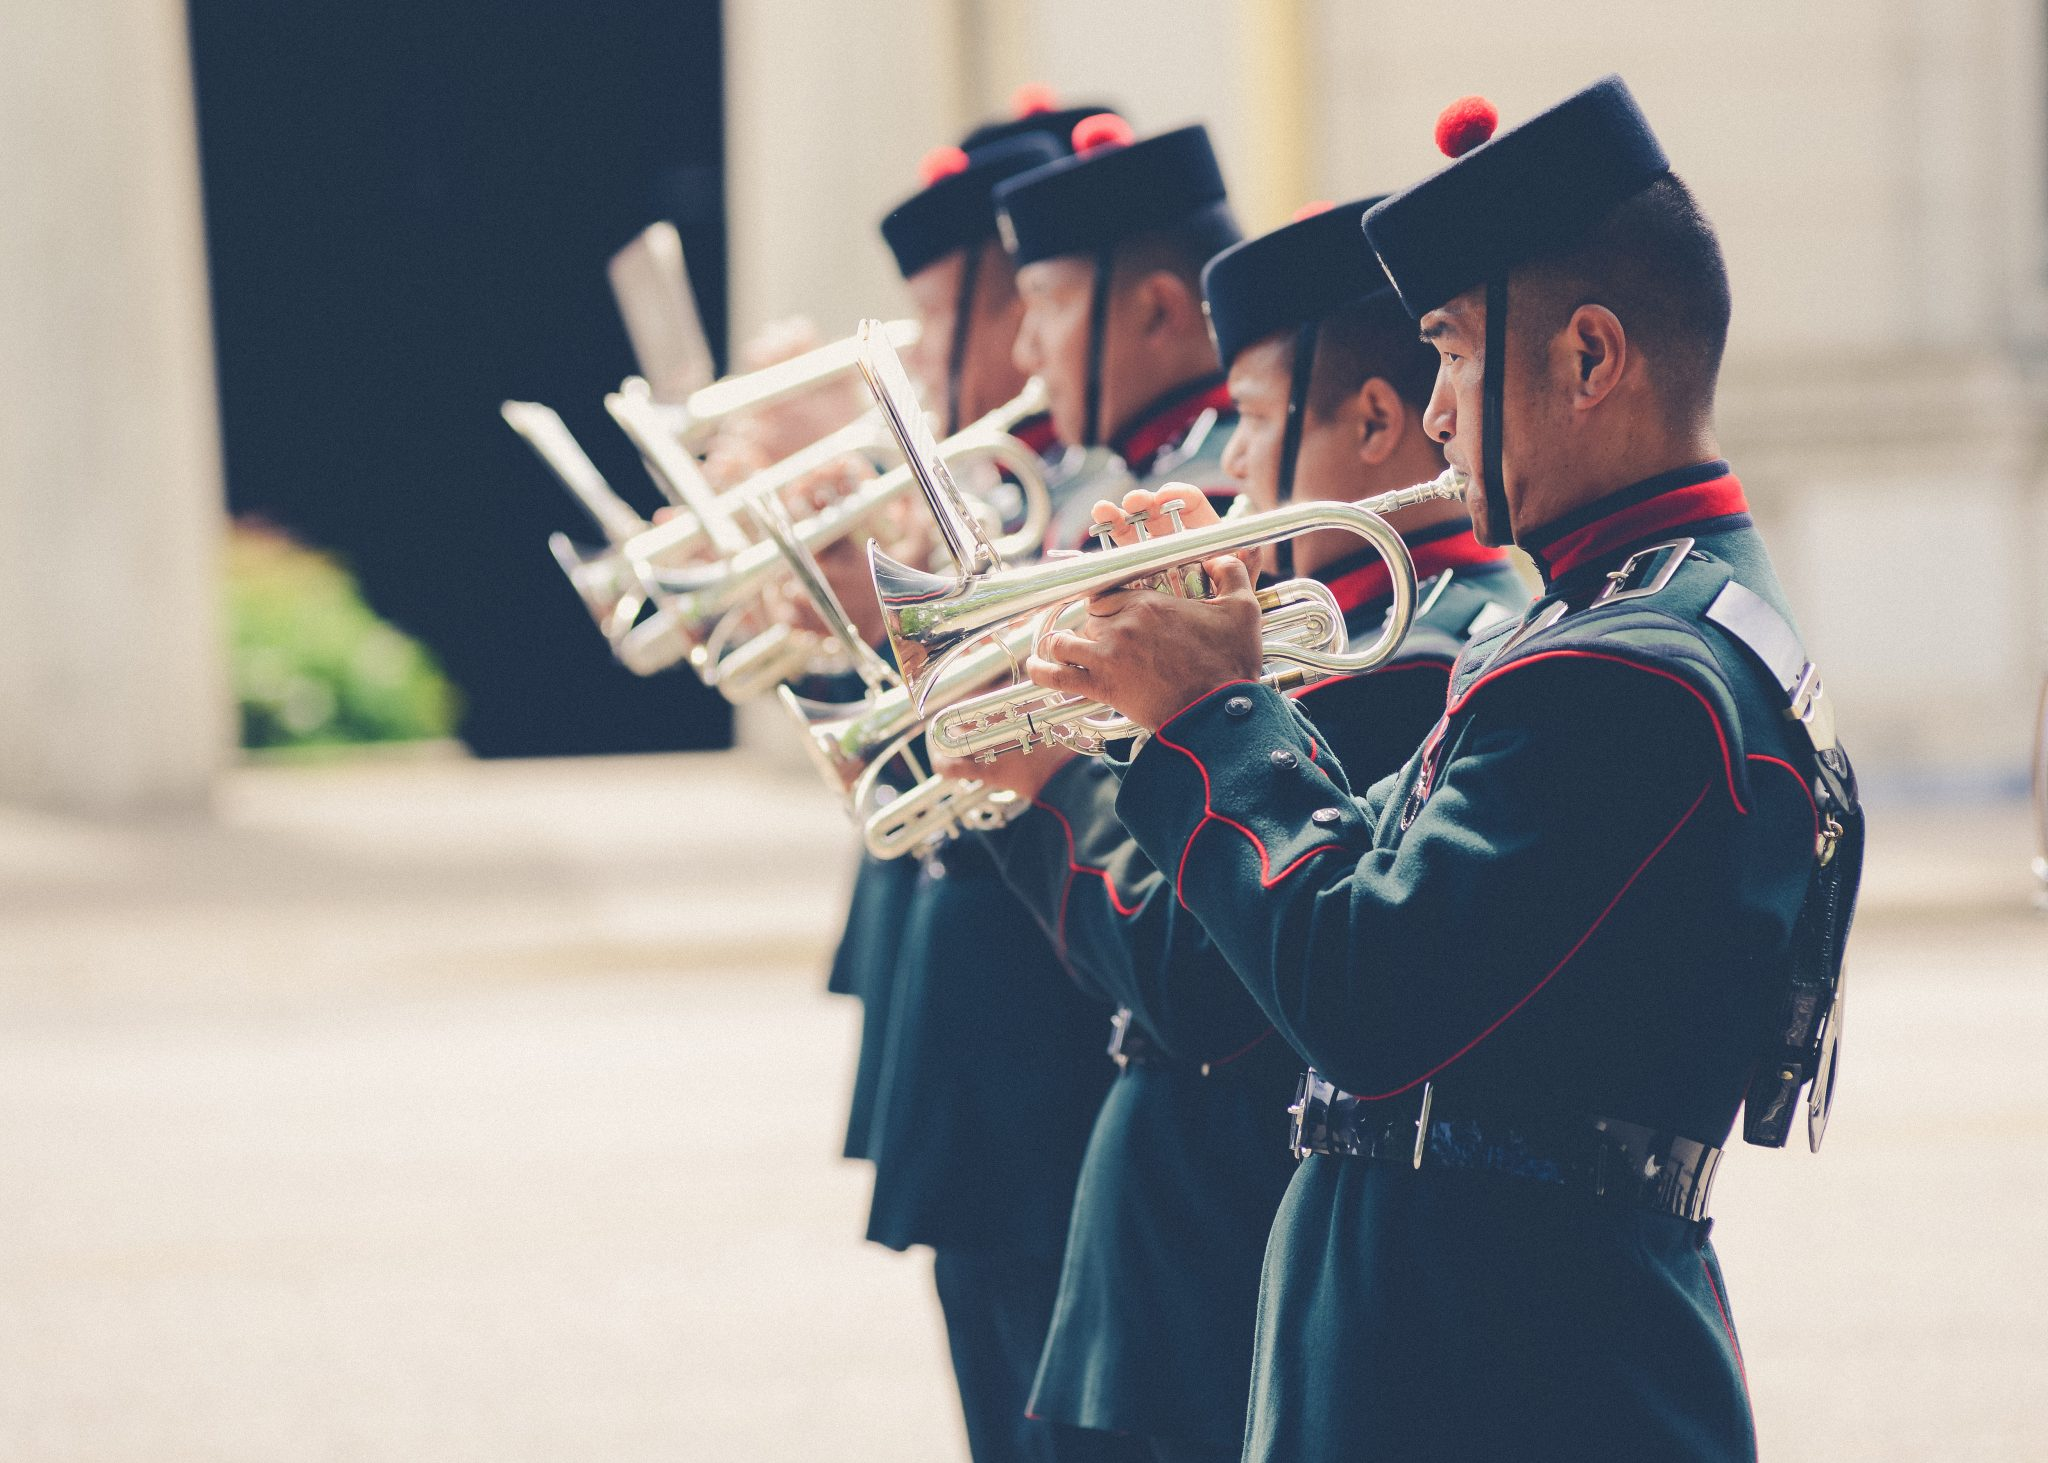 Westminster, Military Band Instruments